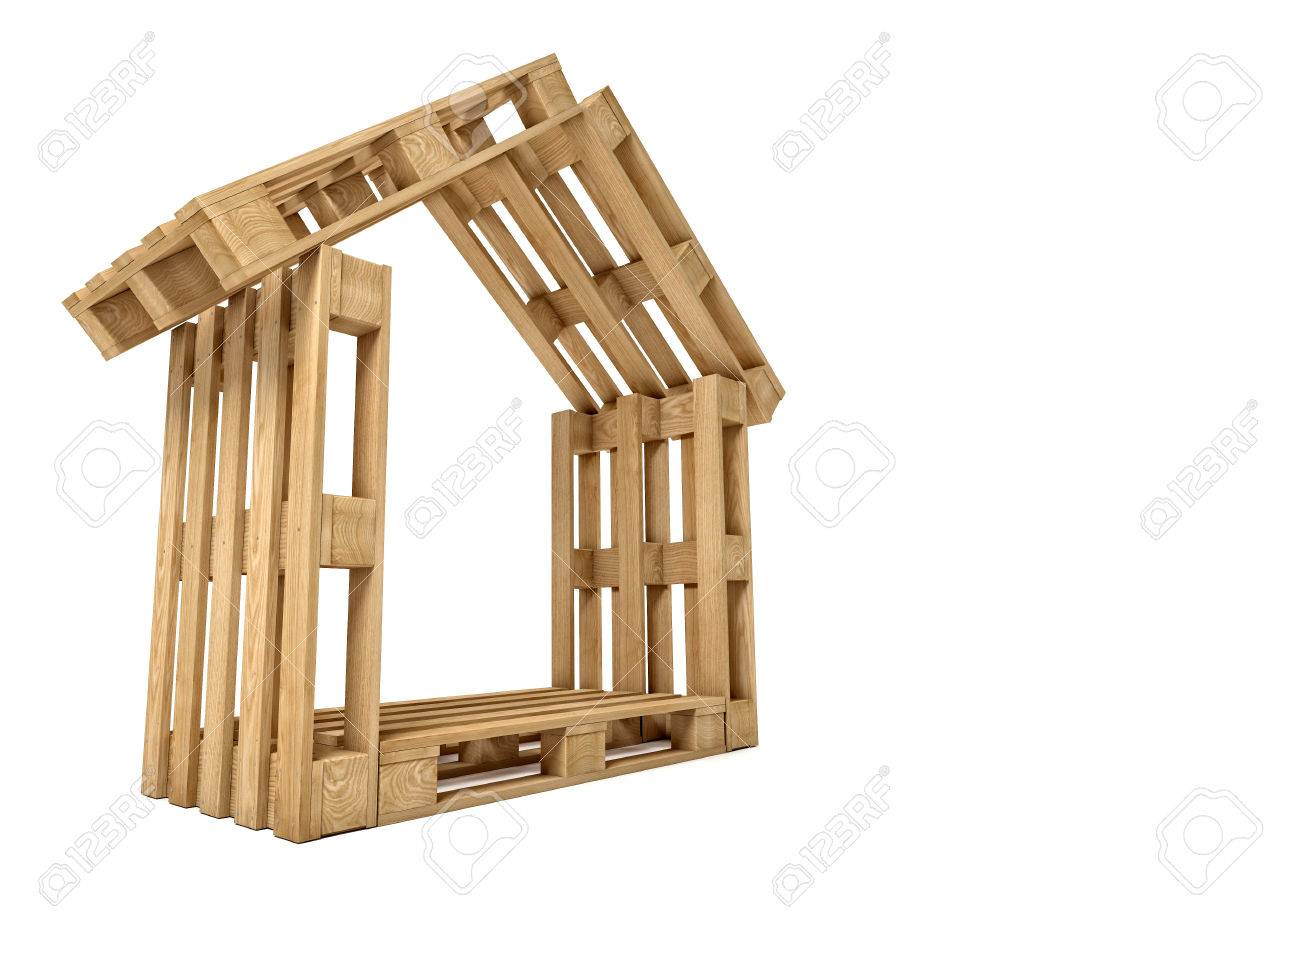 Wood Pallet House Abstract 3d Wood Pallet House Stock Photo Picture And Royalty